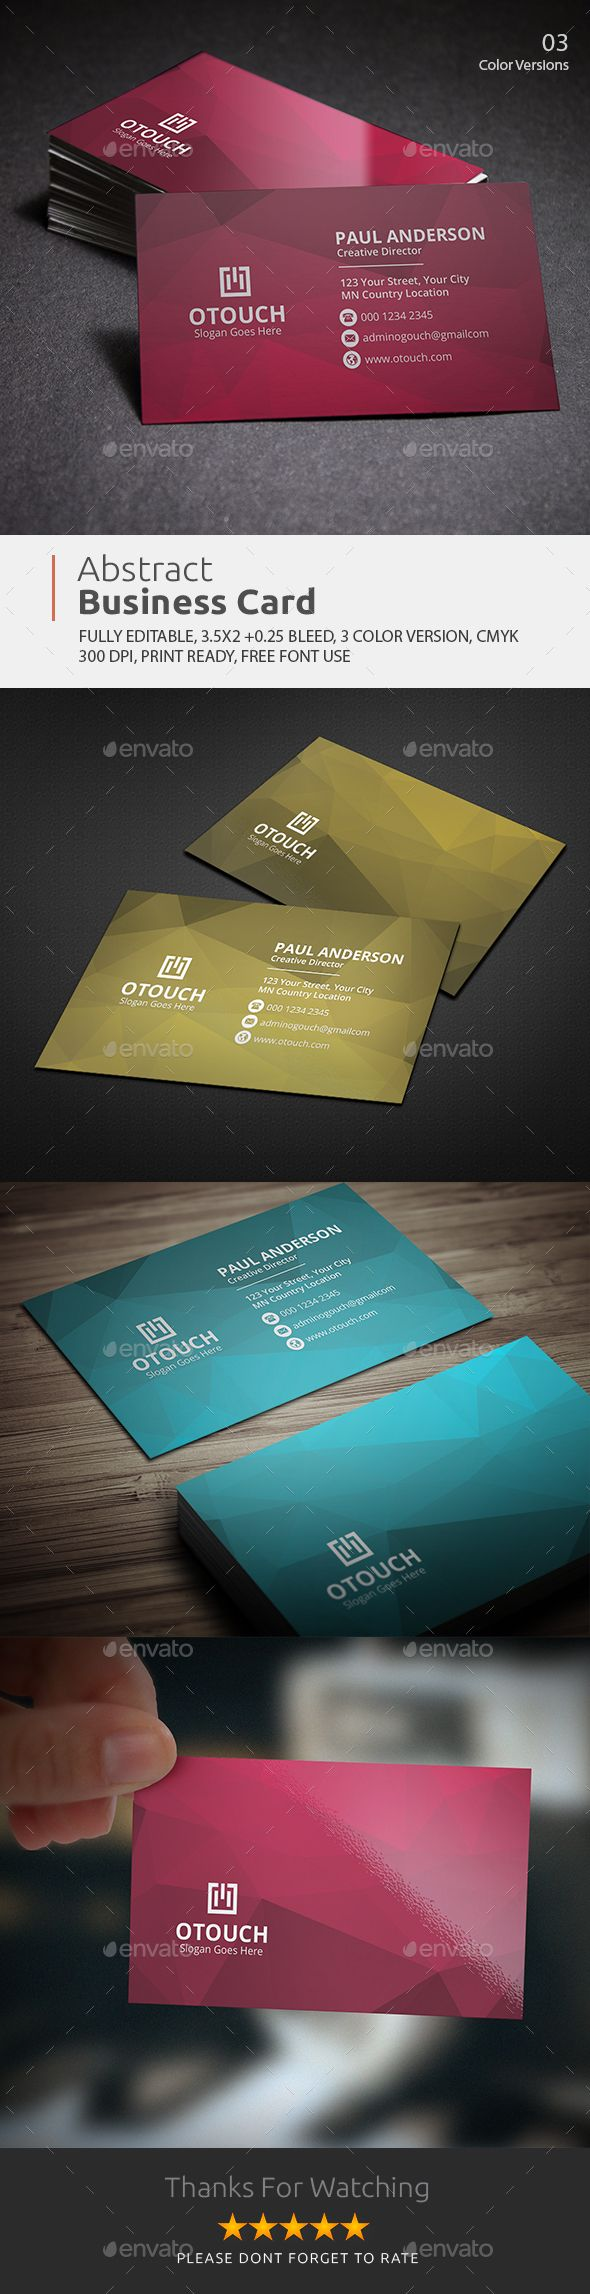 662 best Business Card images on Pinterest | Business cards ...